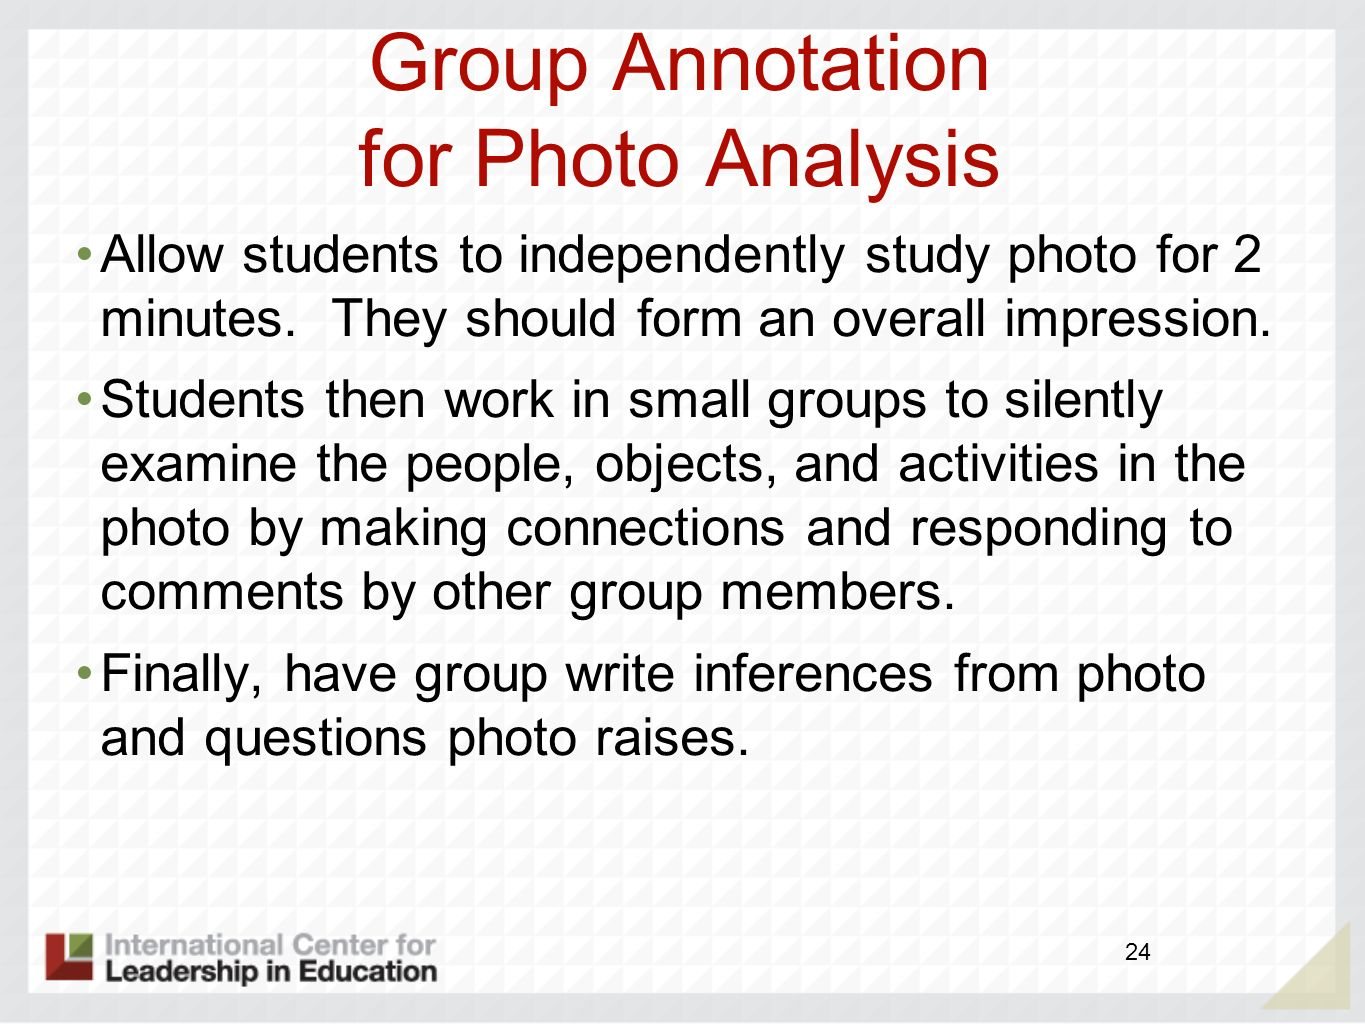 Group Annotation for Photo Analysis